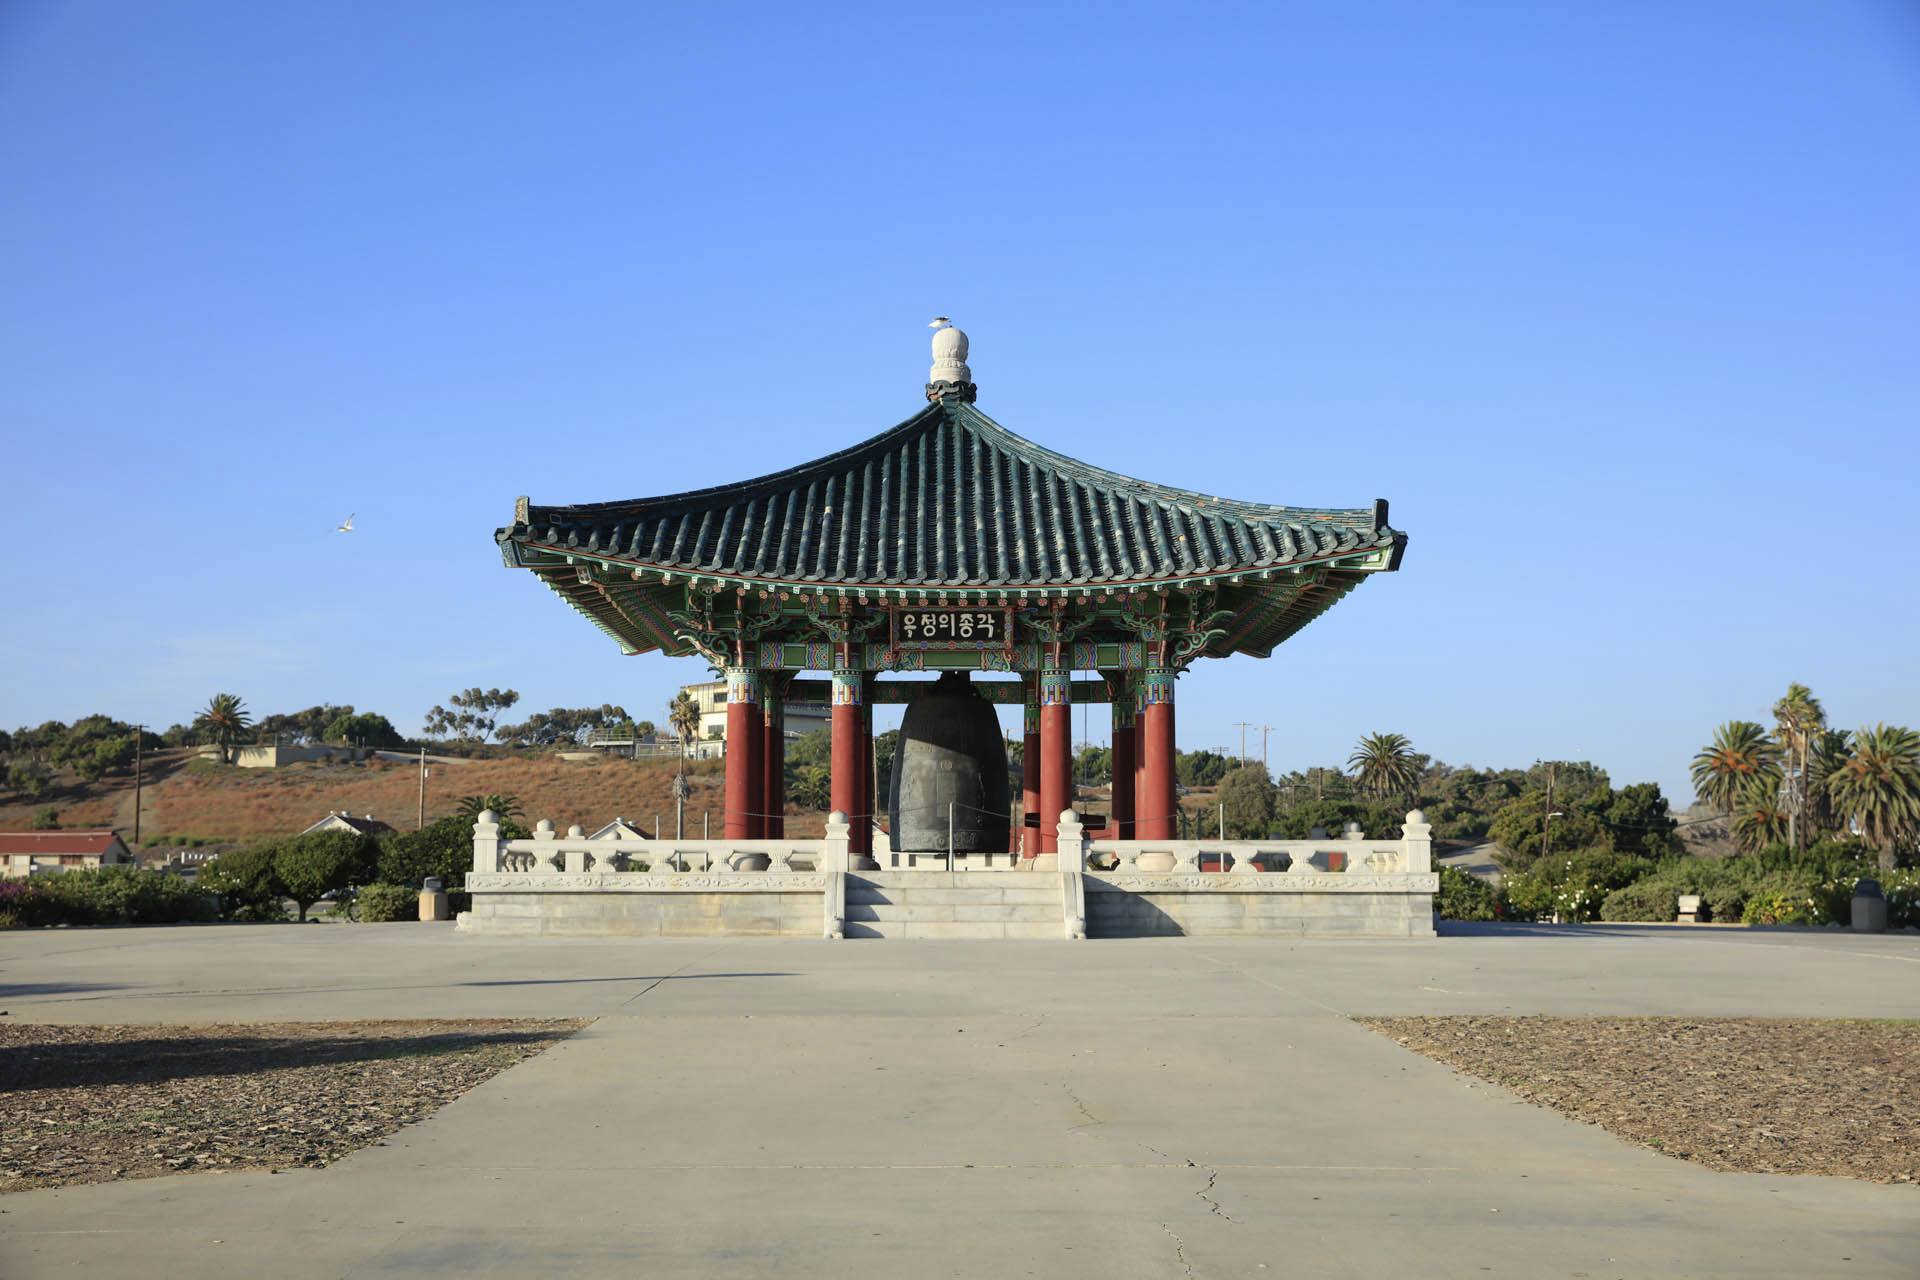 The Korean Bell of Friendship in San Pedro